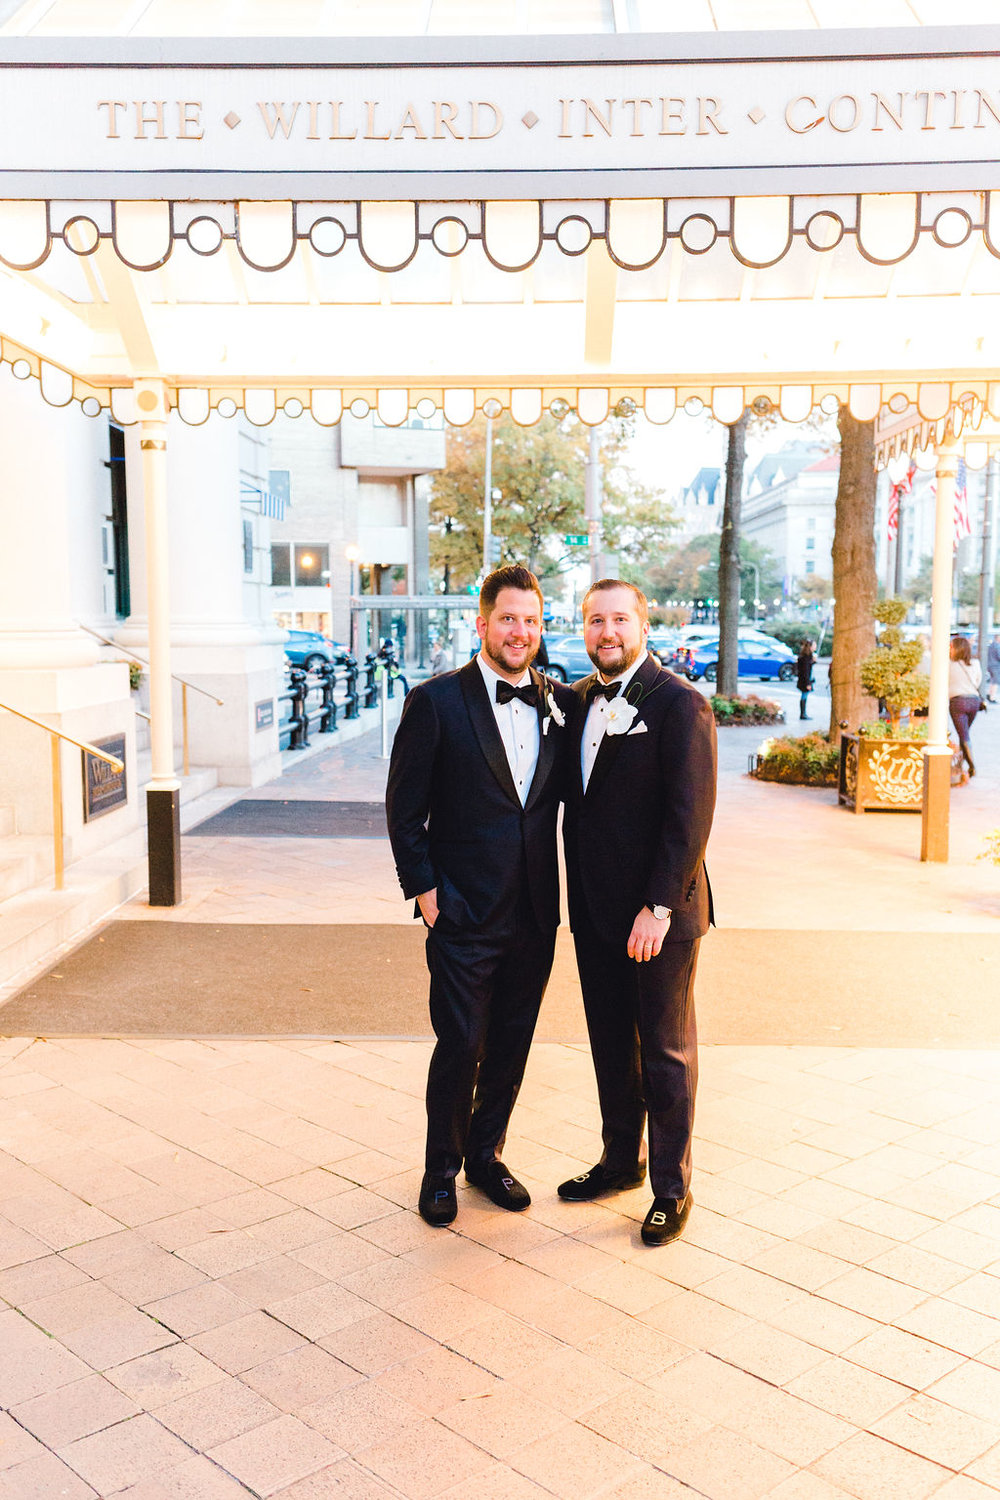 20181103Plume_WillardHotelWedding